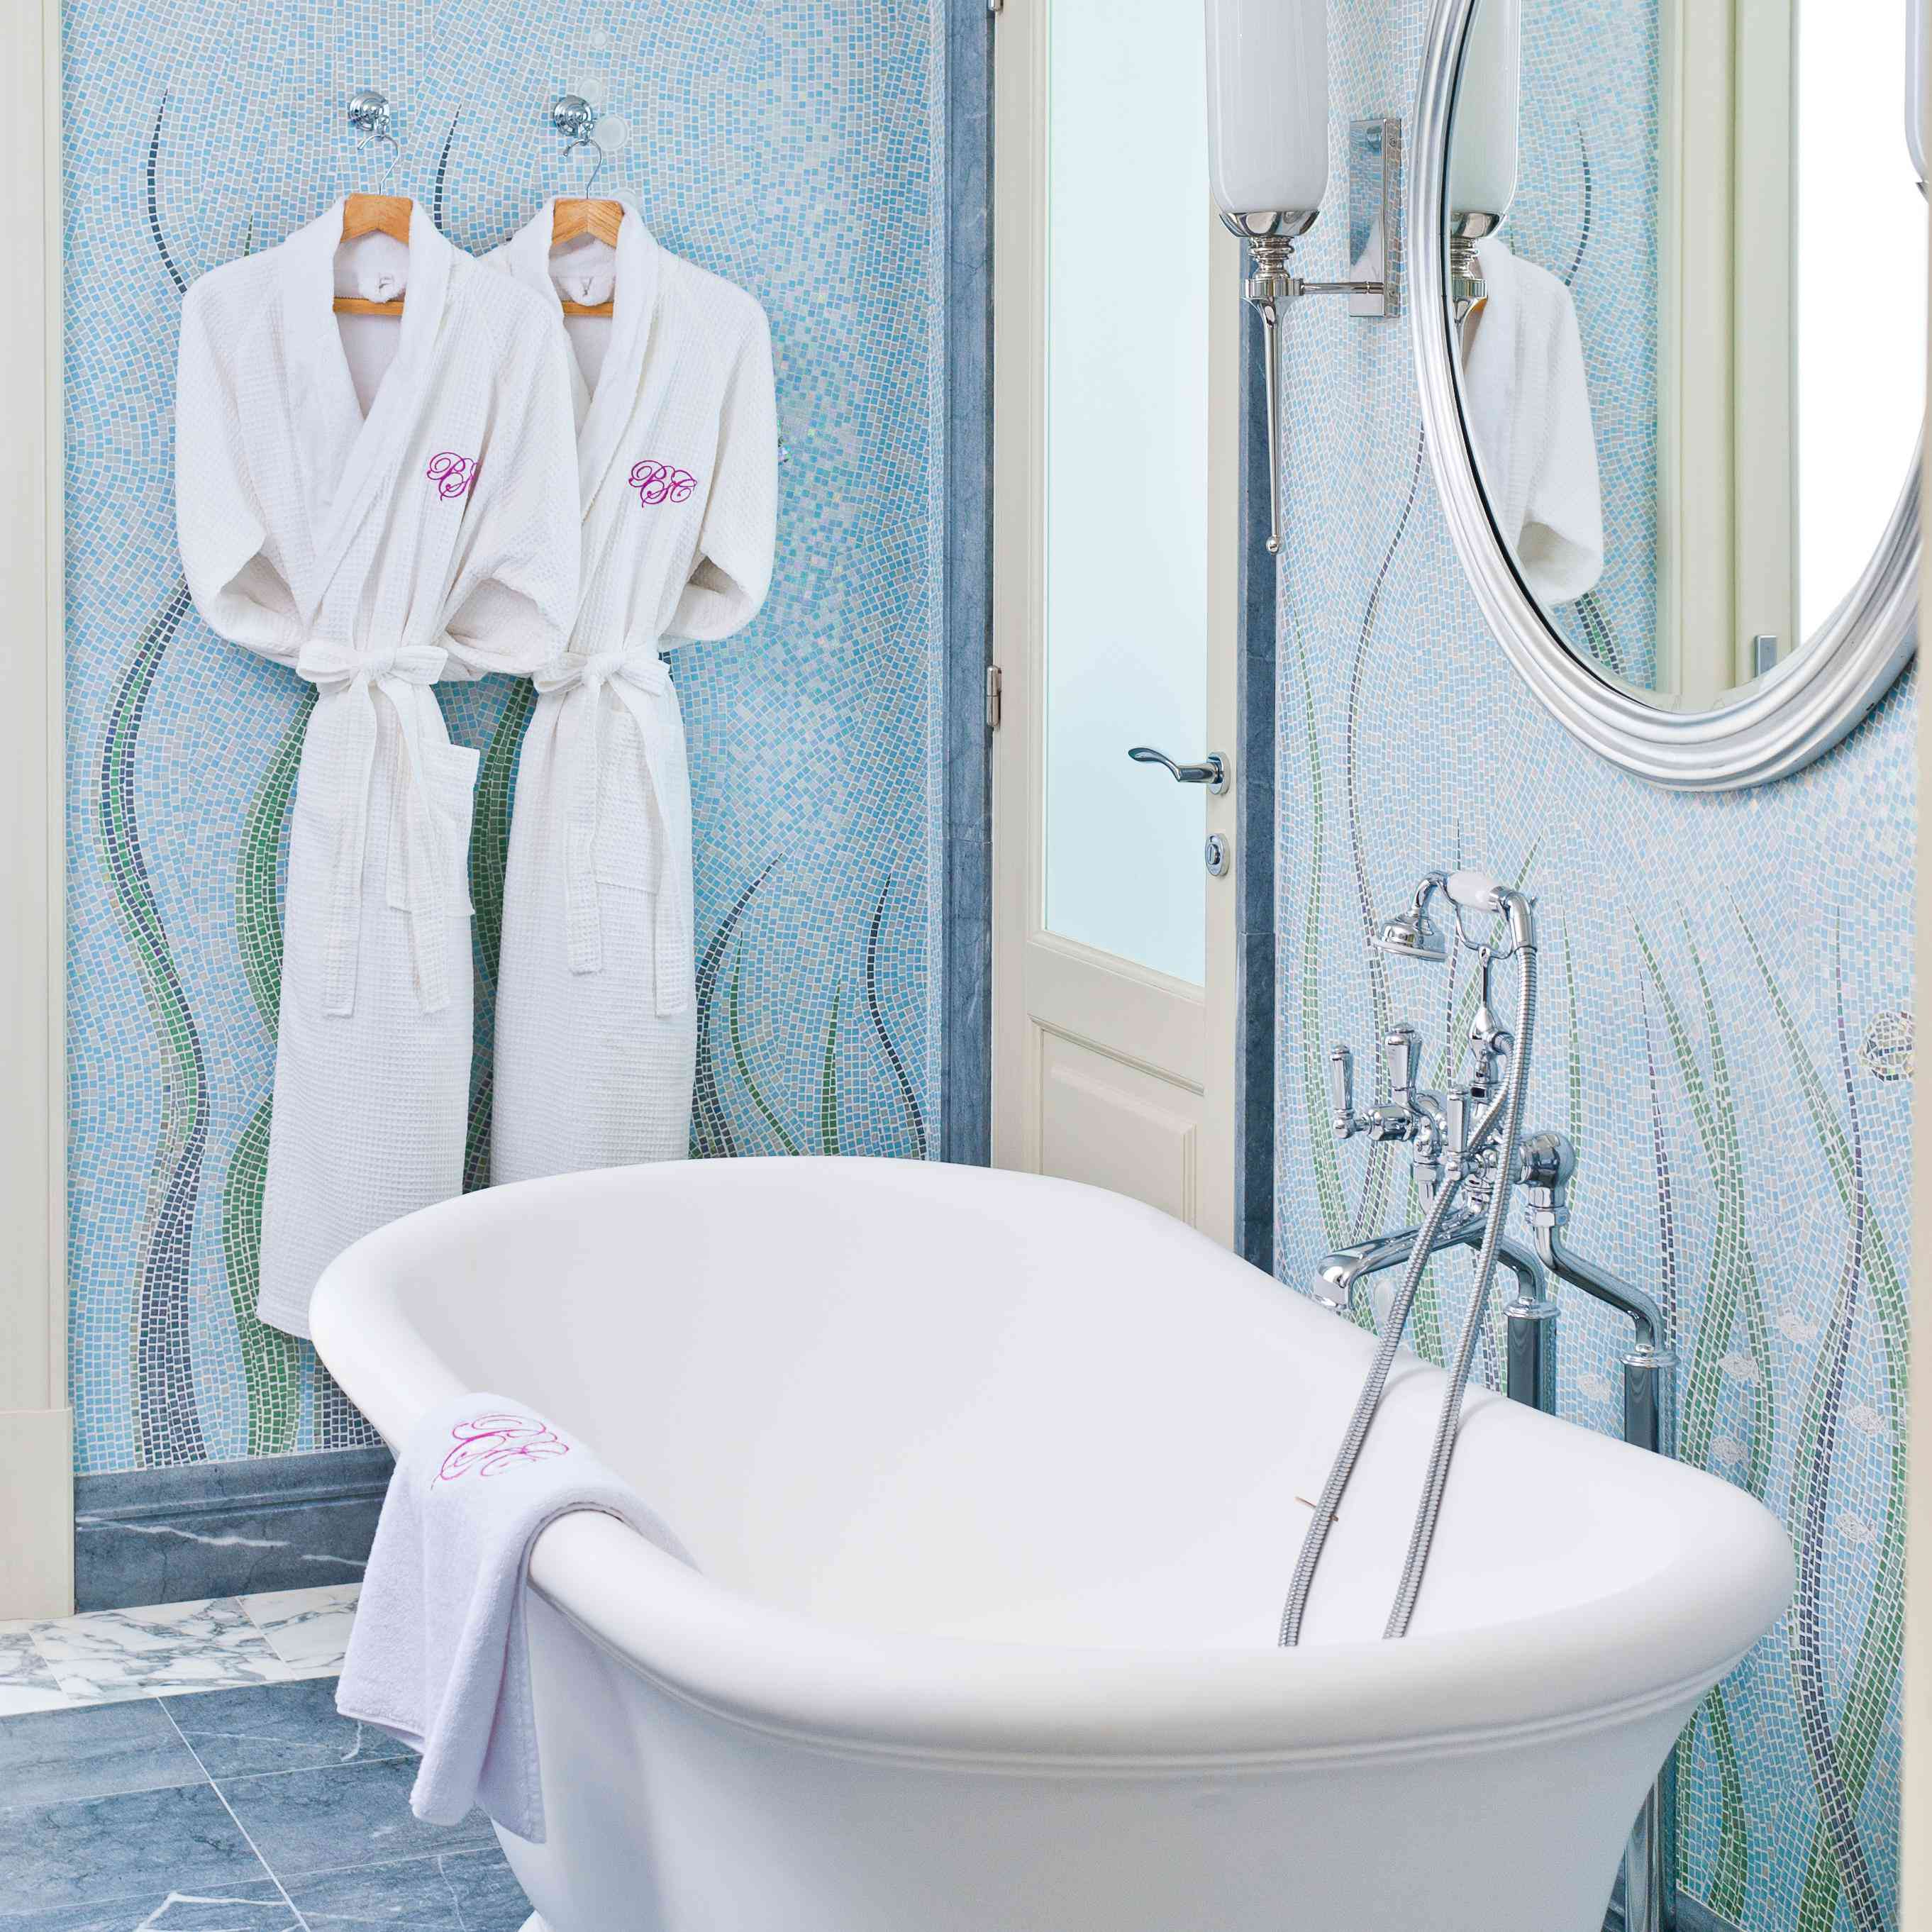 11 Items to Make Your Bathroom Super Chic